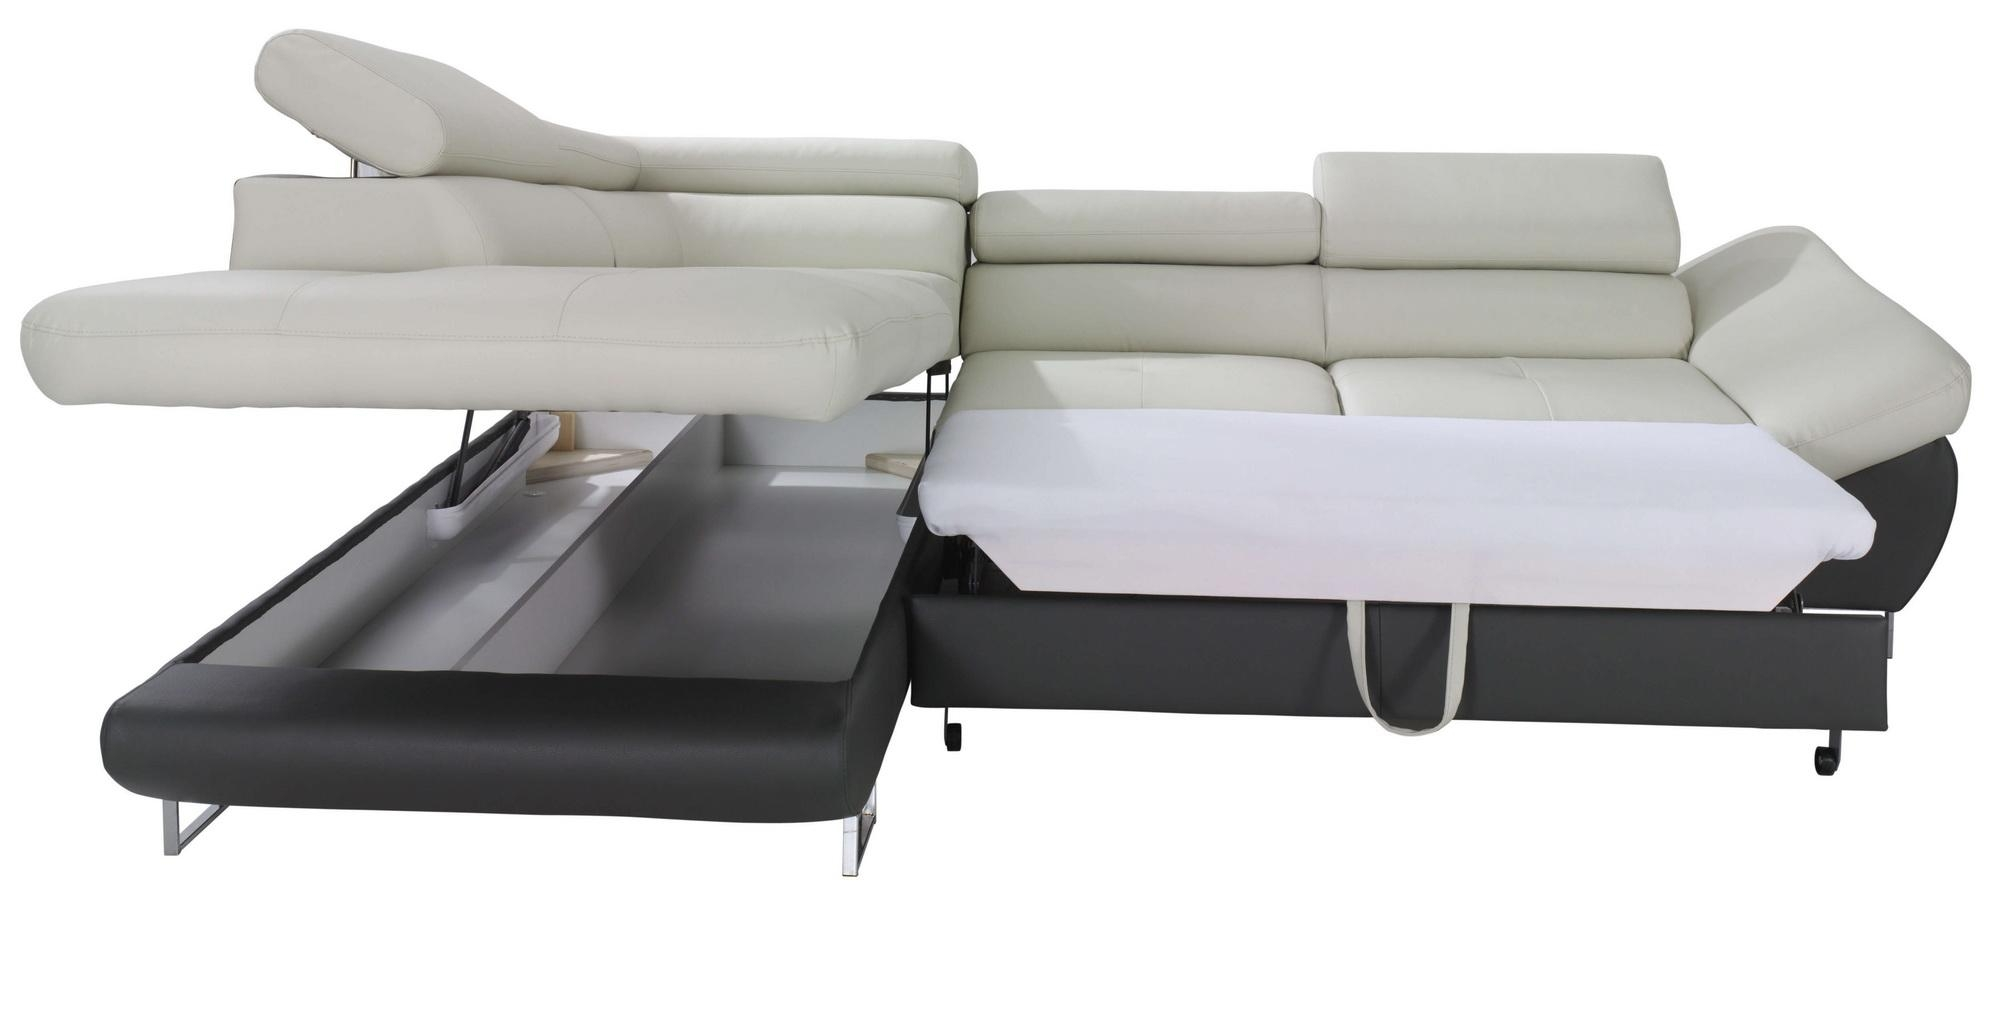 Fabio Sectional Sofa Sleeper With Storage, Creative Furniture Intended For Sectional Sofas With Sleeper And Chaise (View 19 of 21)